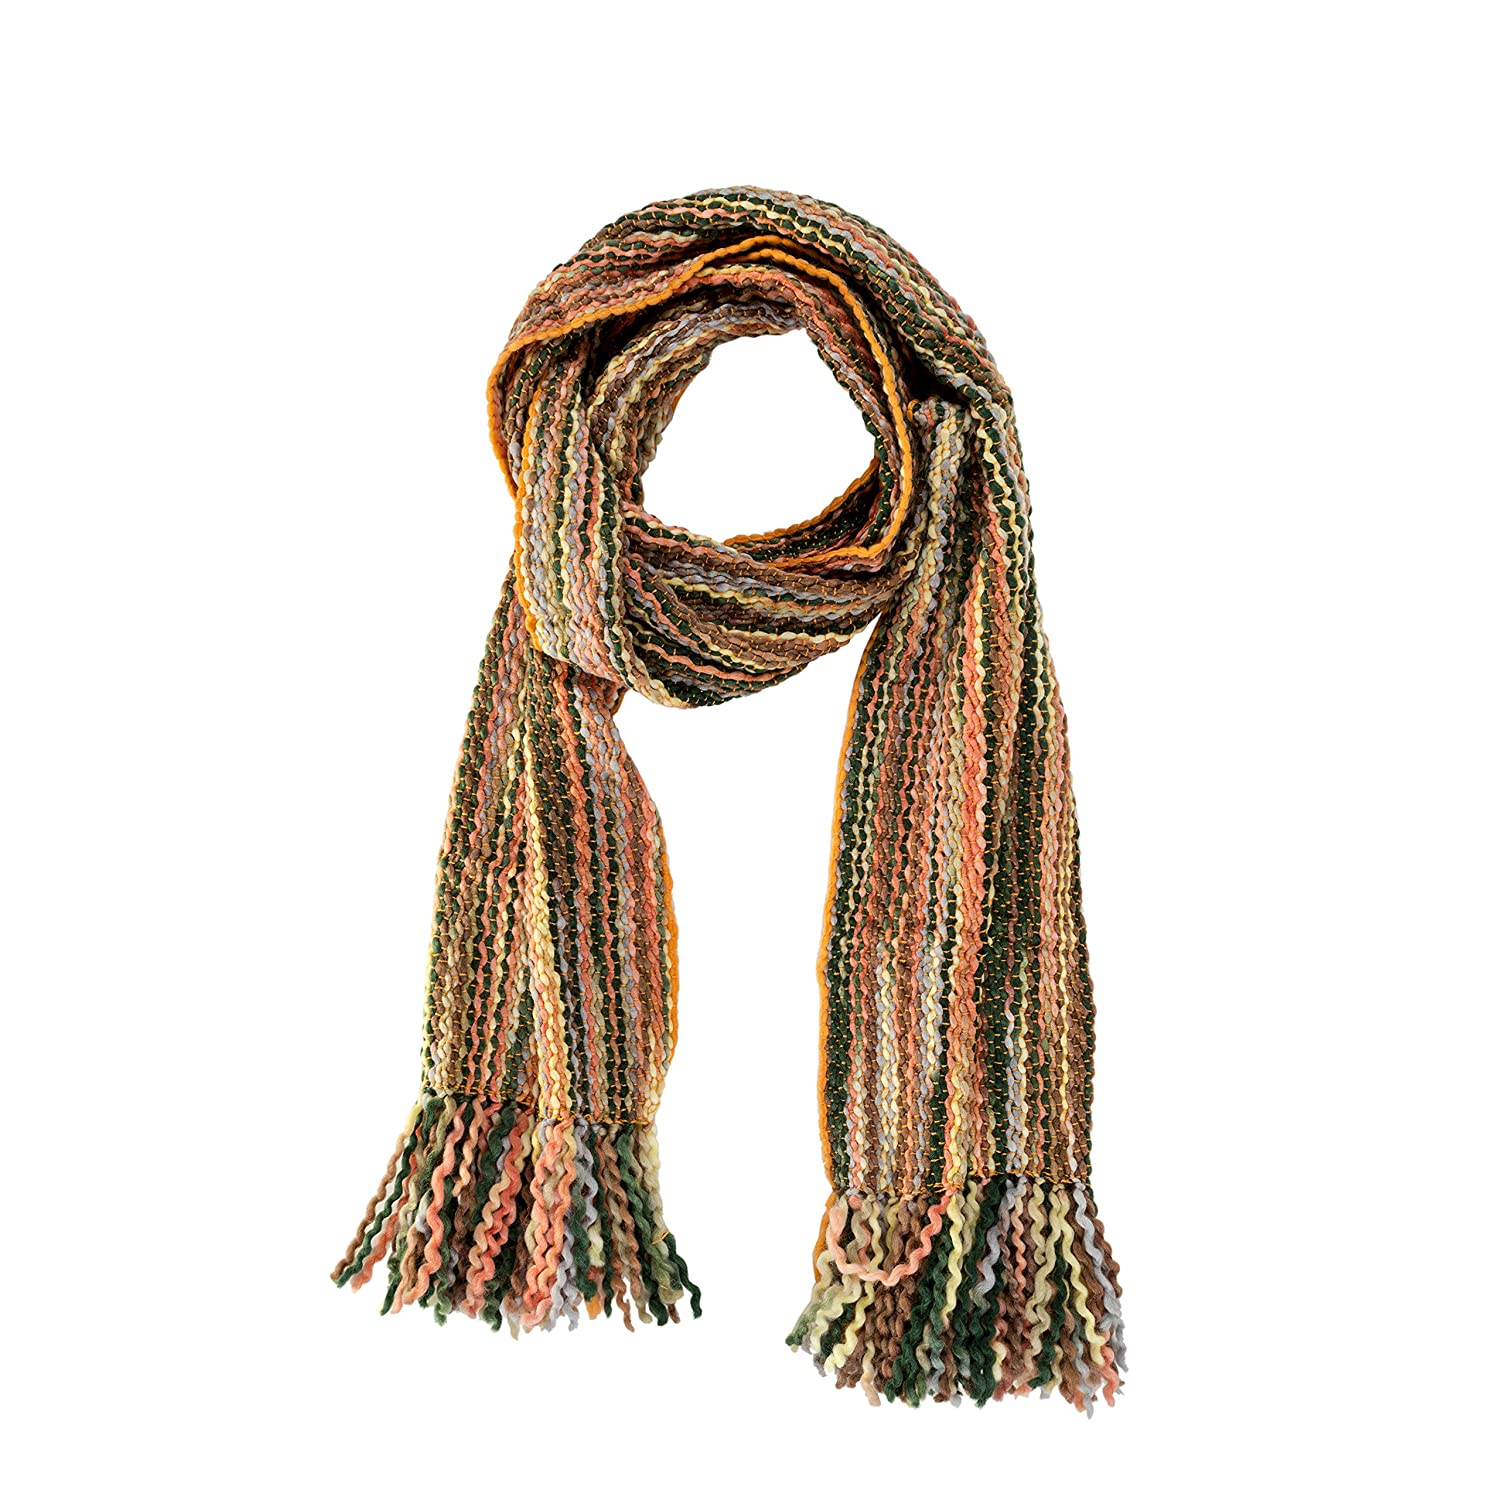 Tumia LAC - Striped Thick, Extra Long Luxurious Scarf - Handmade and Very Warm - Unisex Soft Wool EC5121-BR